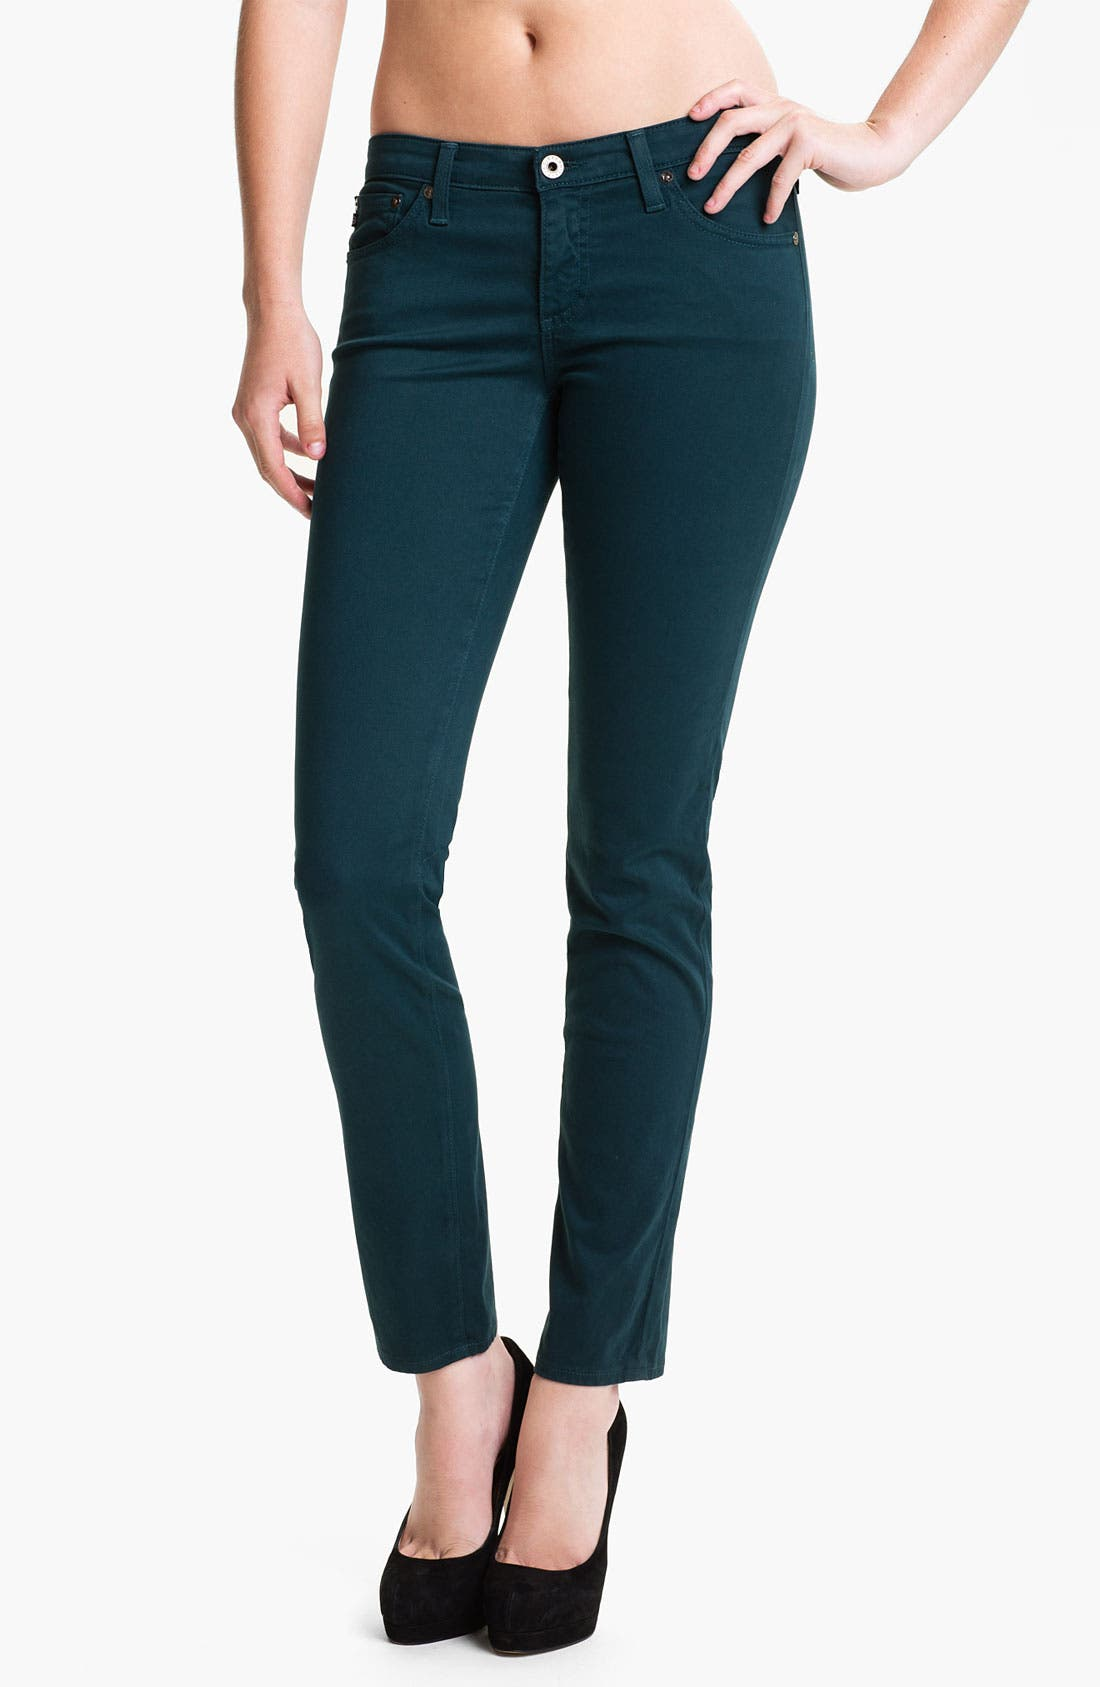 Alternate Image 1 Selected - AG 'Stilt' Skinny Ankle Jeans (Juniper)